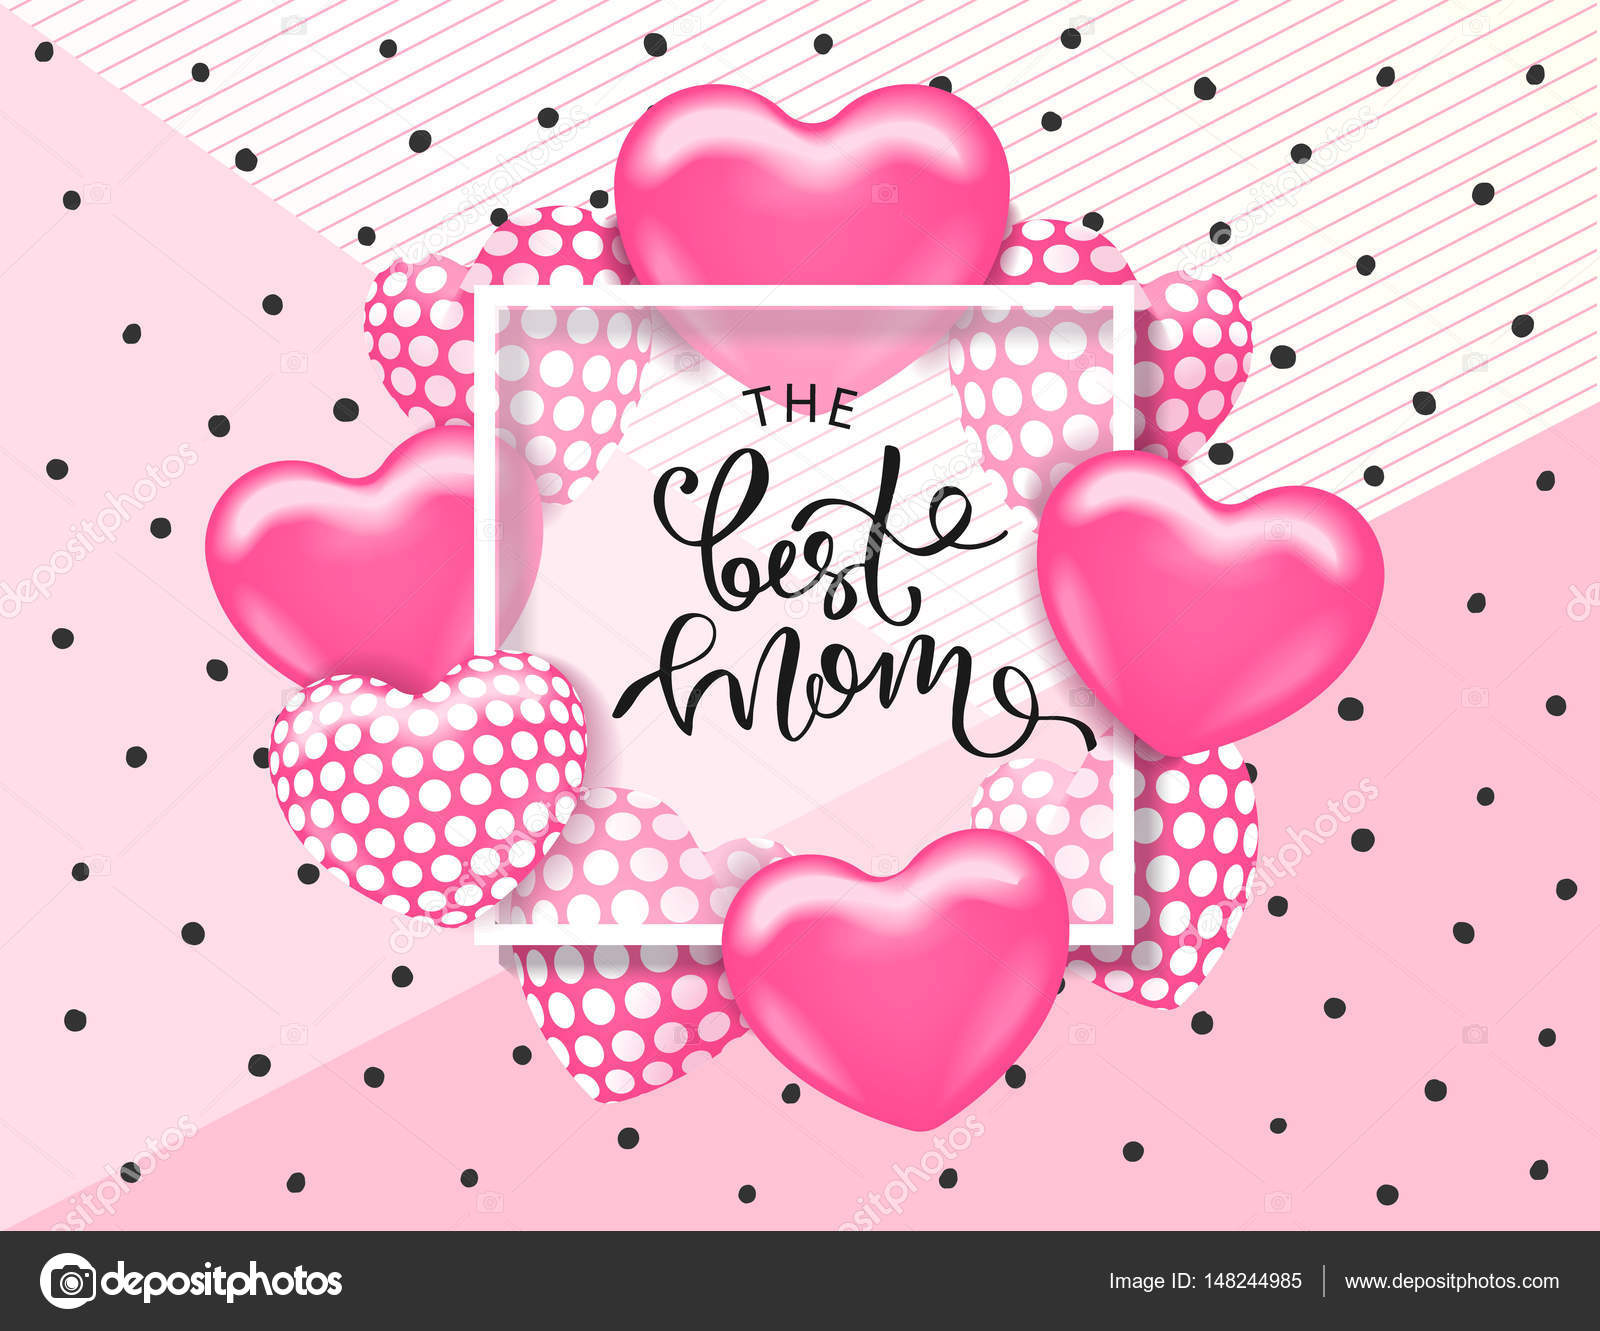 The Best Mom Card Template With Cute Pink Heart And Lettering It May Be Used For Background Poster Advertising Sale Postcard E